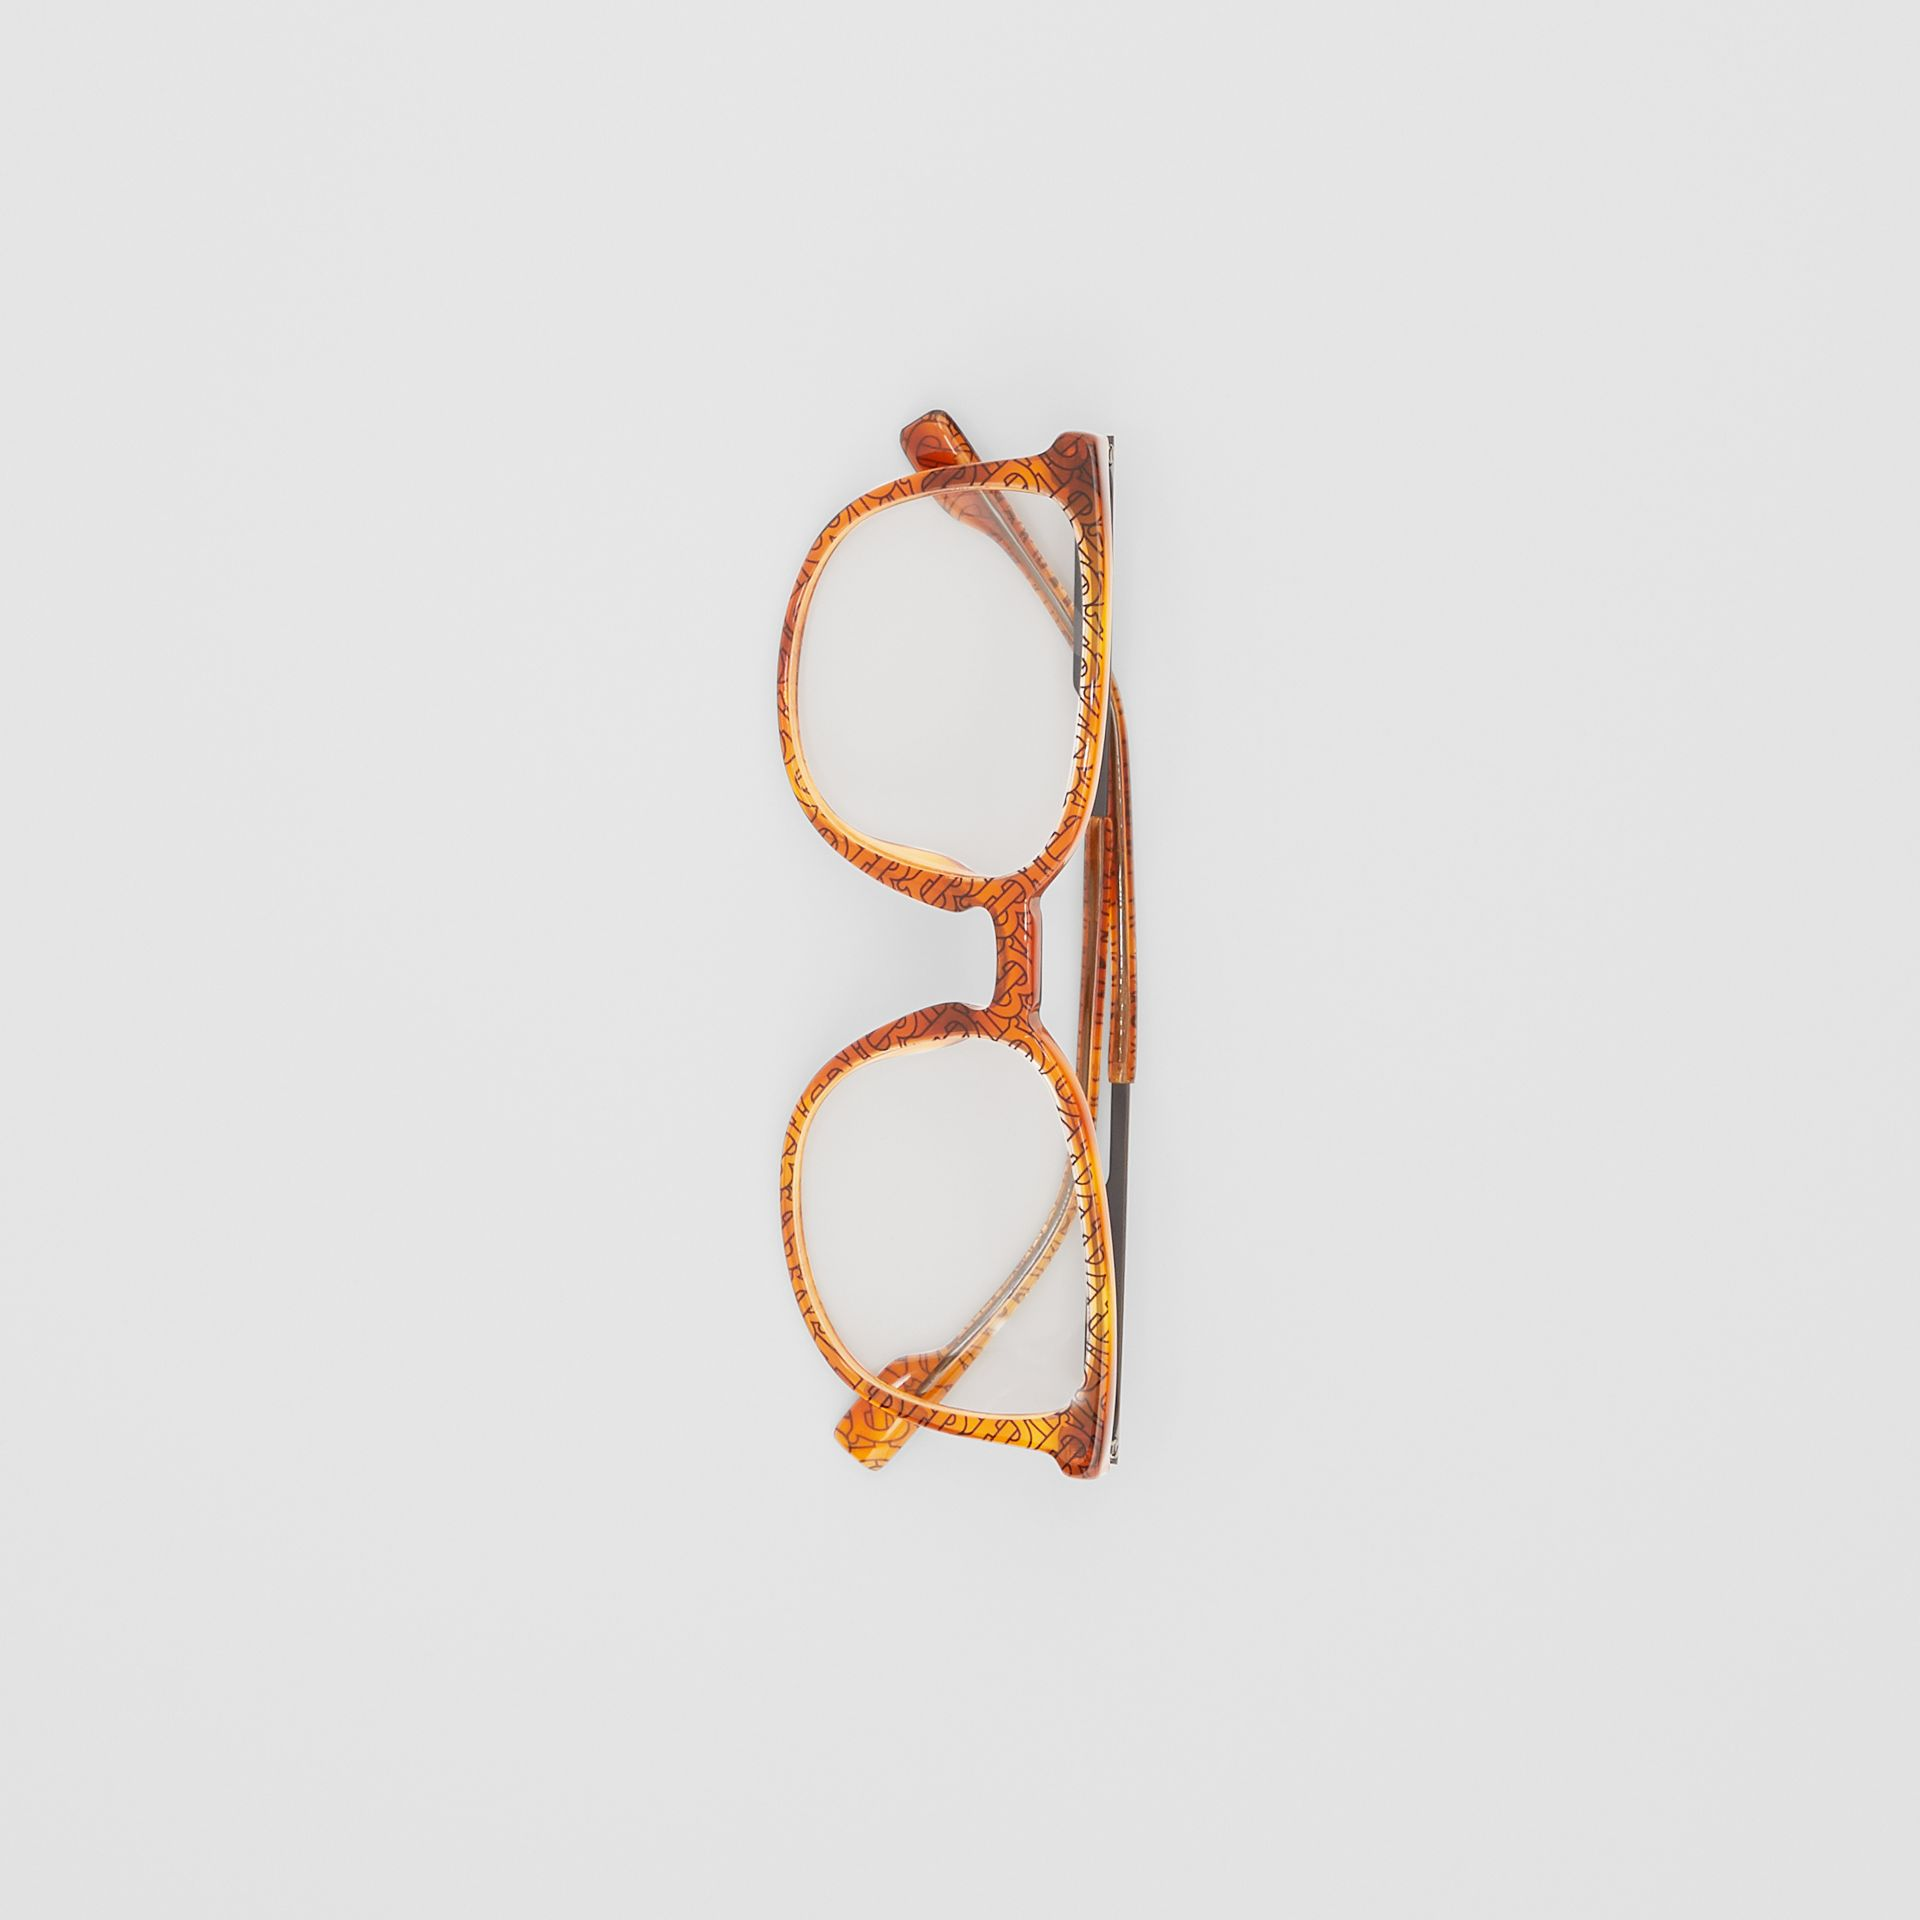 Monogram Print Square Optical Frames in Tortoiseshell Amber | Burberry - gallery image 2